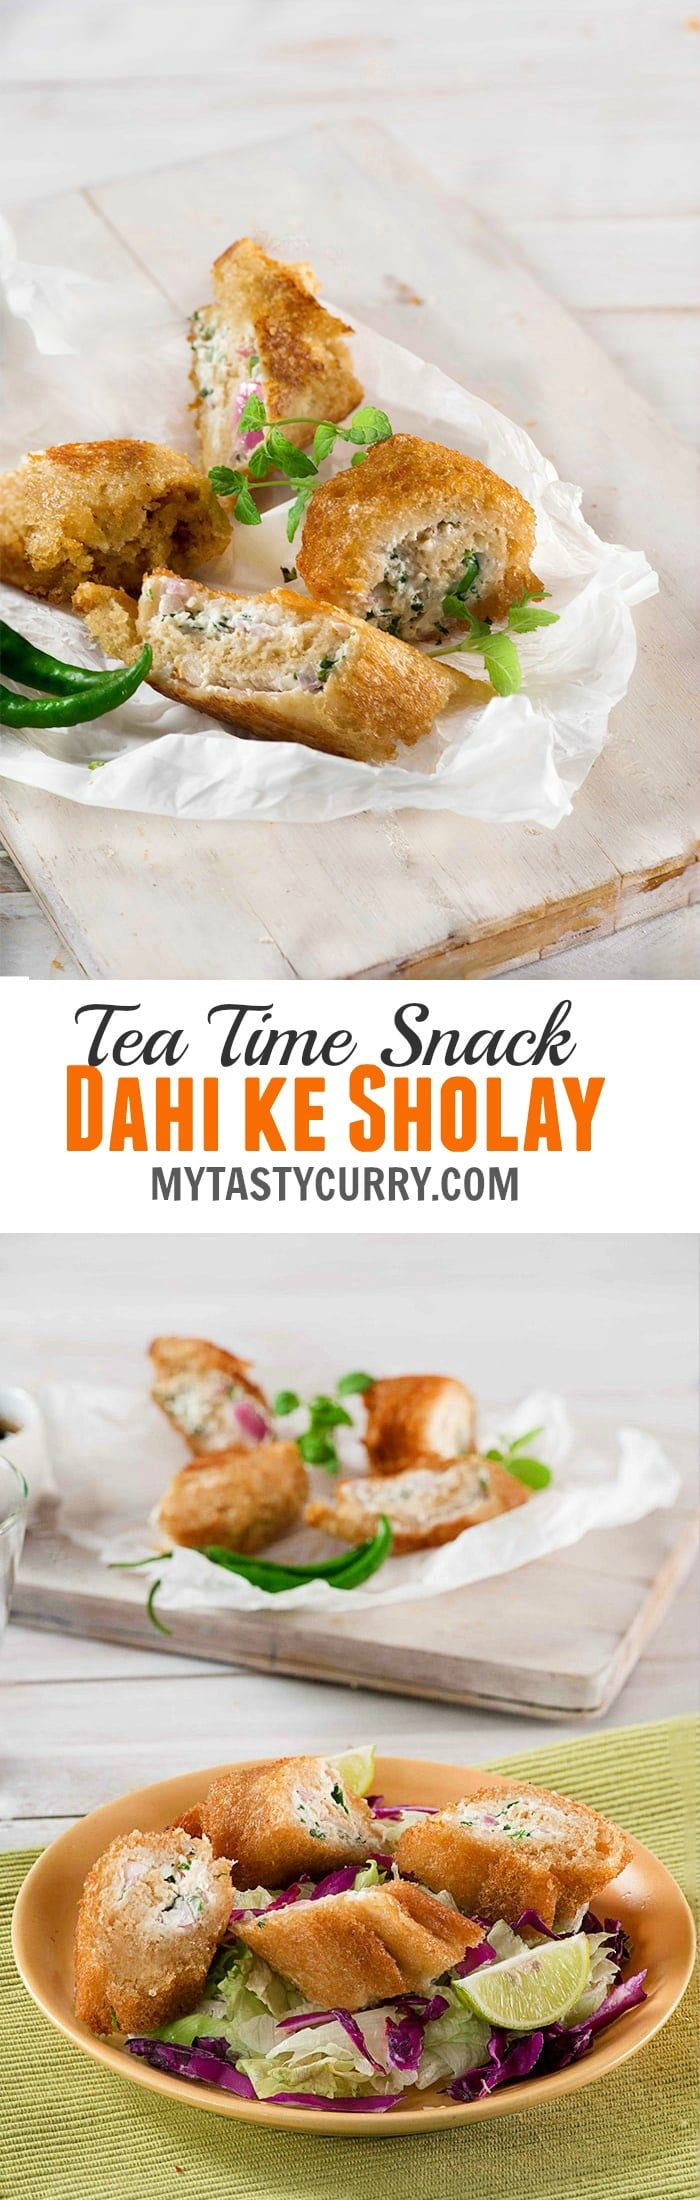 Dahi ke Sholay is crispy tea time Indian snack in which hot spicy hung curd /hung yogurt is wrapped in bread slices and then deep fried / air-fried/ pan fried depending on how healthy you want it.